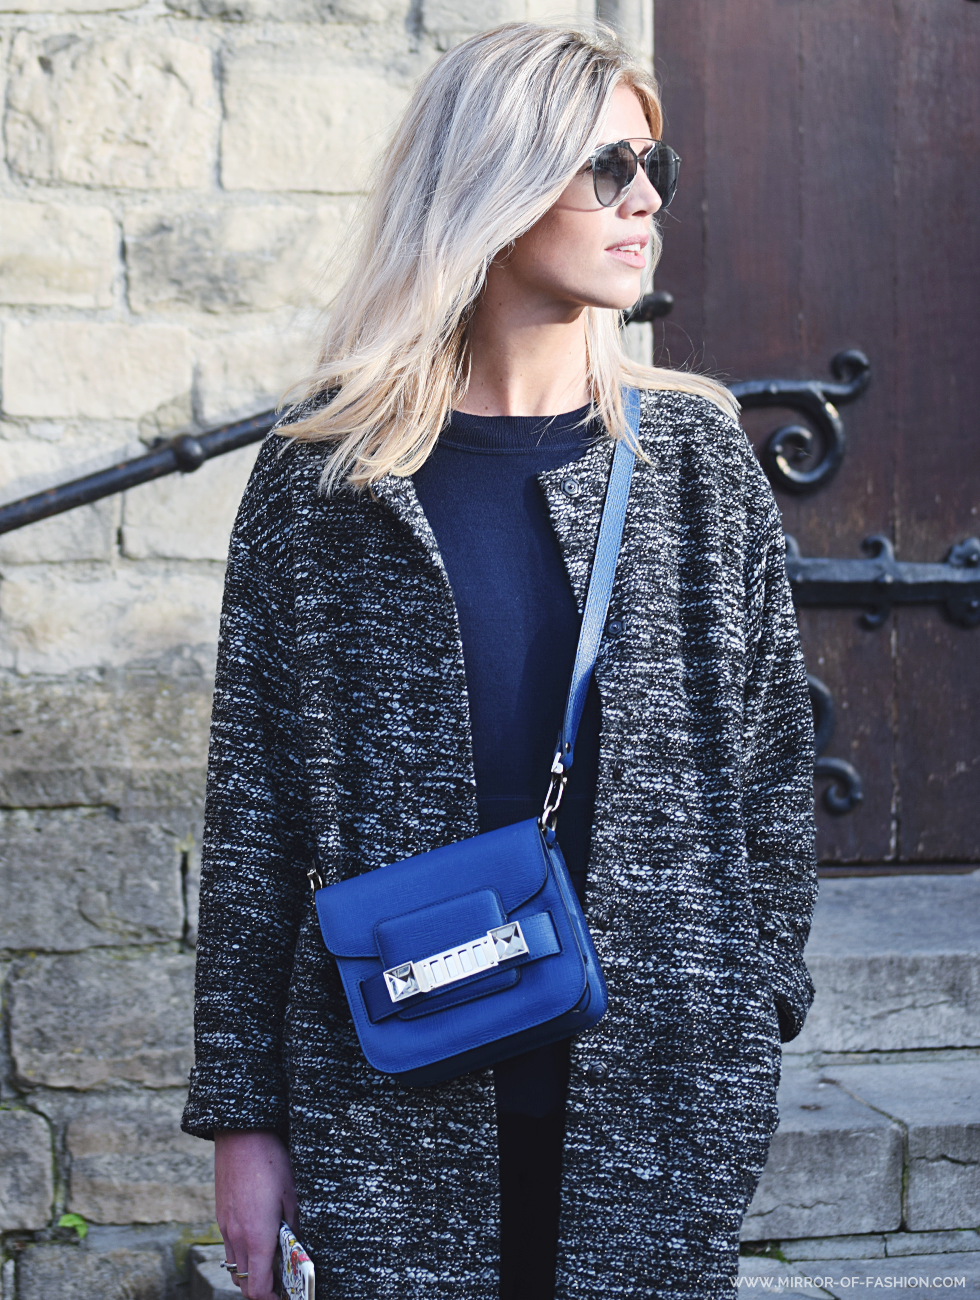 Outfit of the day,Mayerline, Dior, Proenza Schouler, Daniel Wellington, Halé Bob, Reebok, By Malene Birger, outfit, style, fashion, blogger